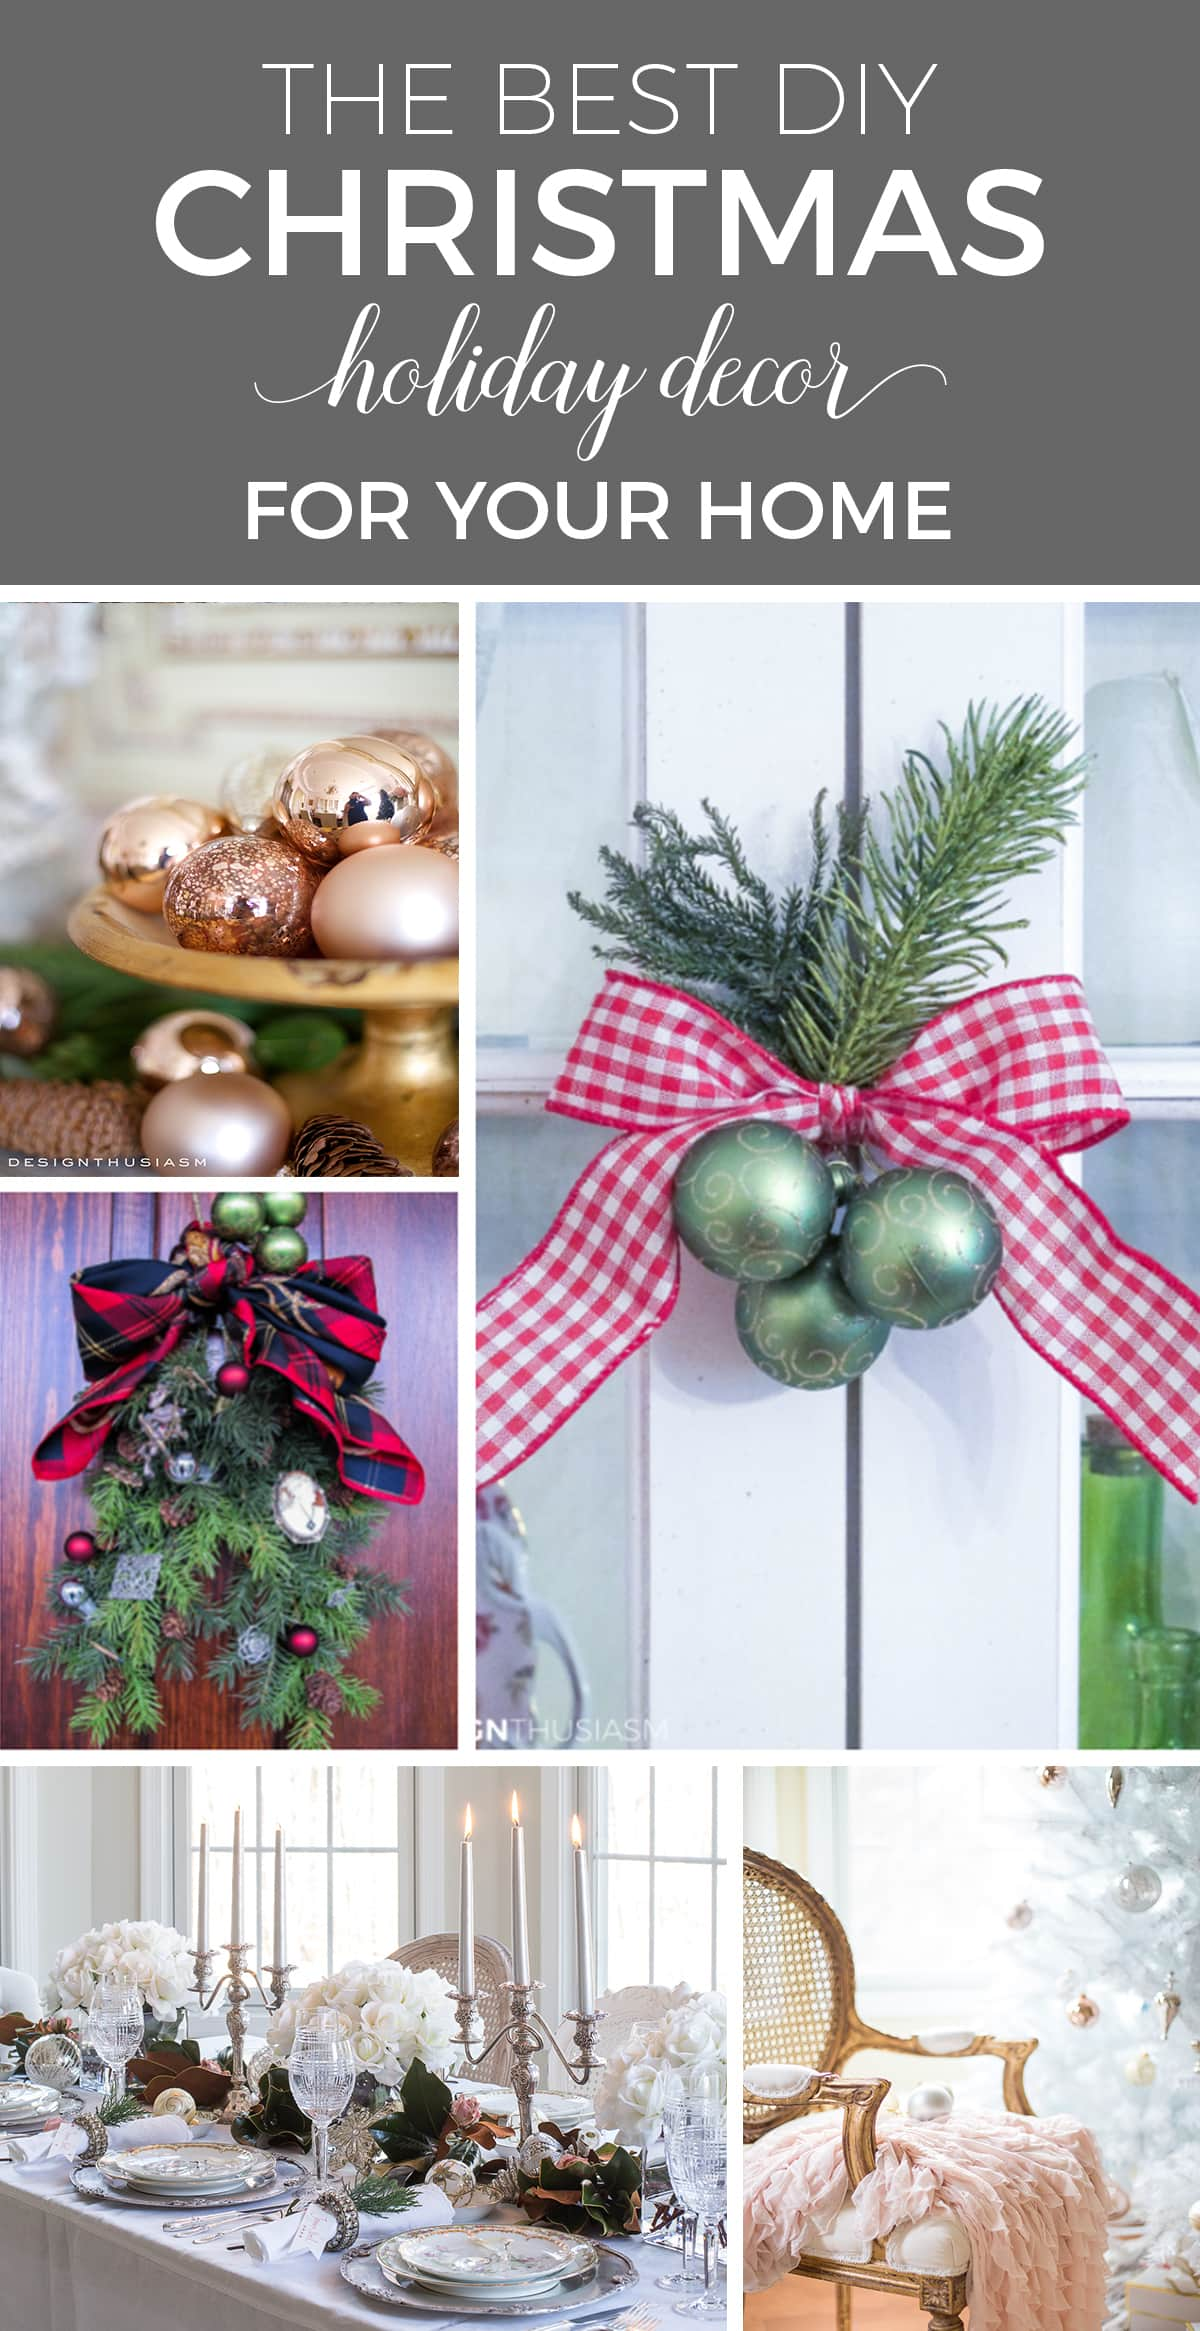 The Best Christmas Decorations, Holiday Decor and More | designthusiasm.com